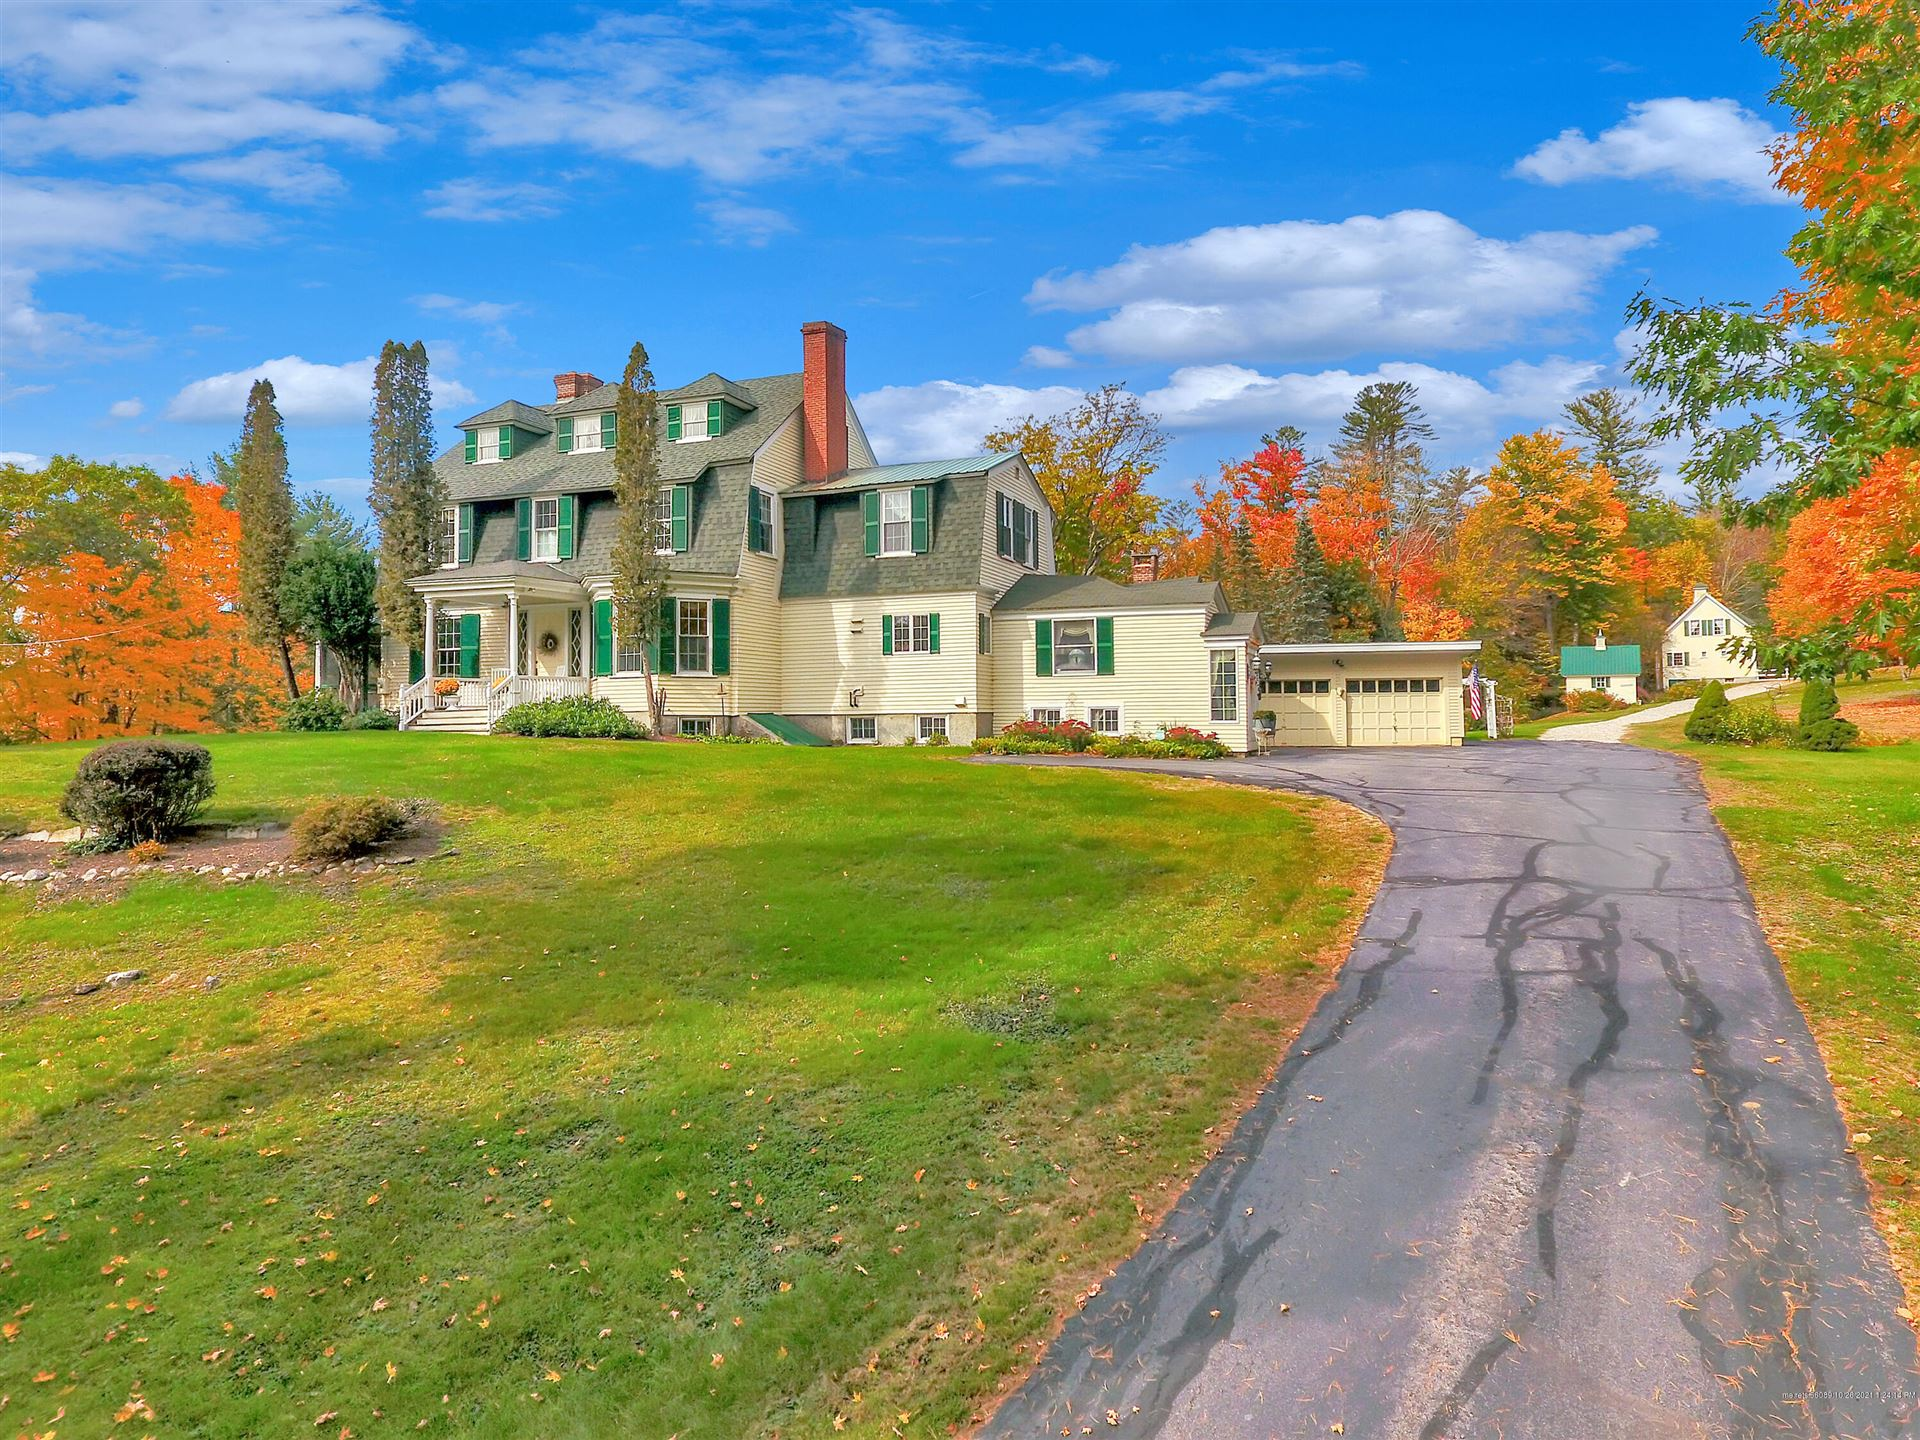 Photo of 15 East Andover Road, Andover, ME 04226 (MLS # 1476857)